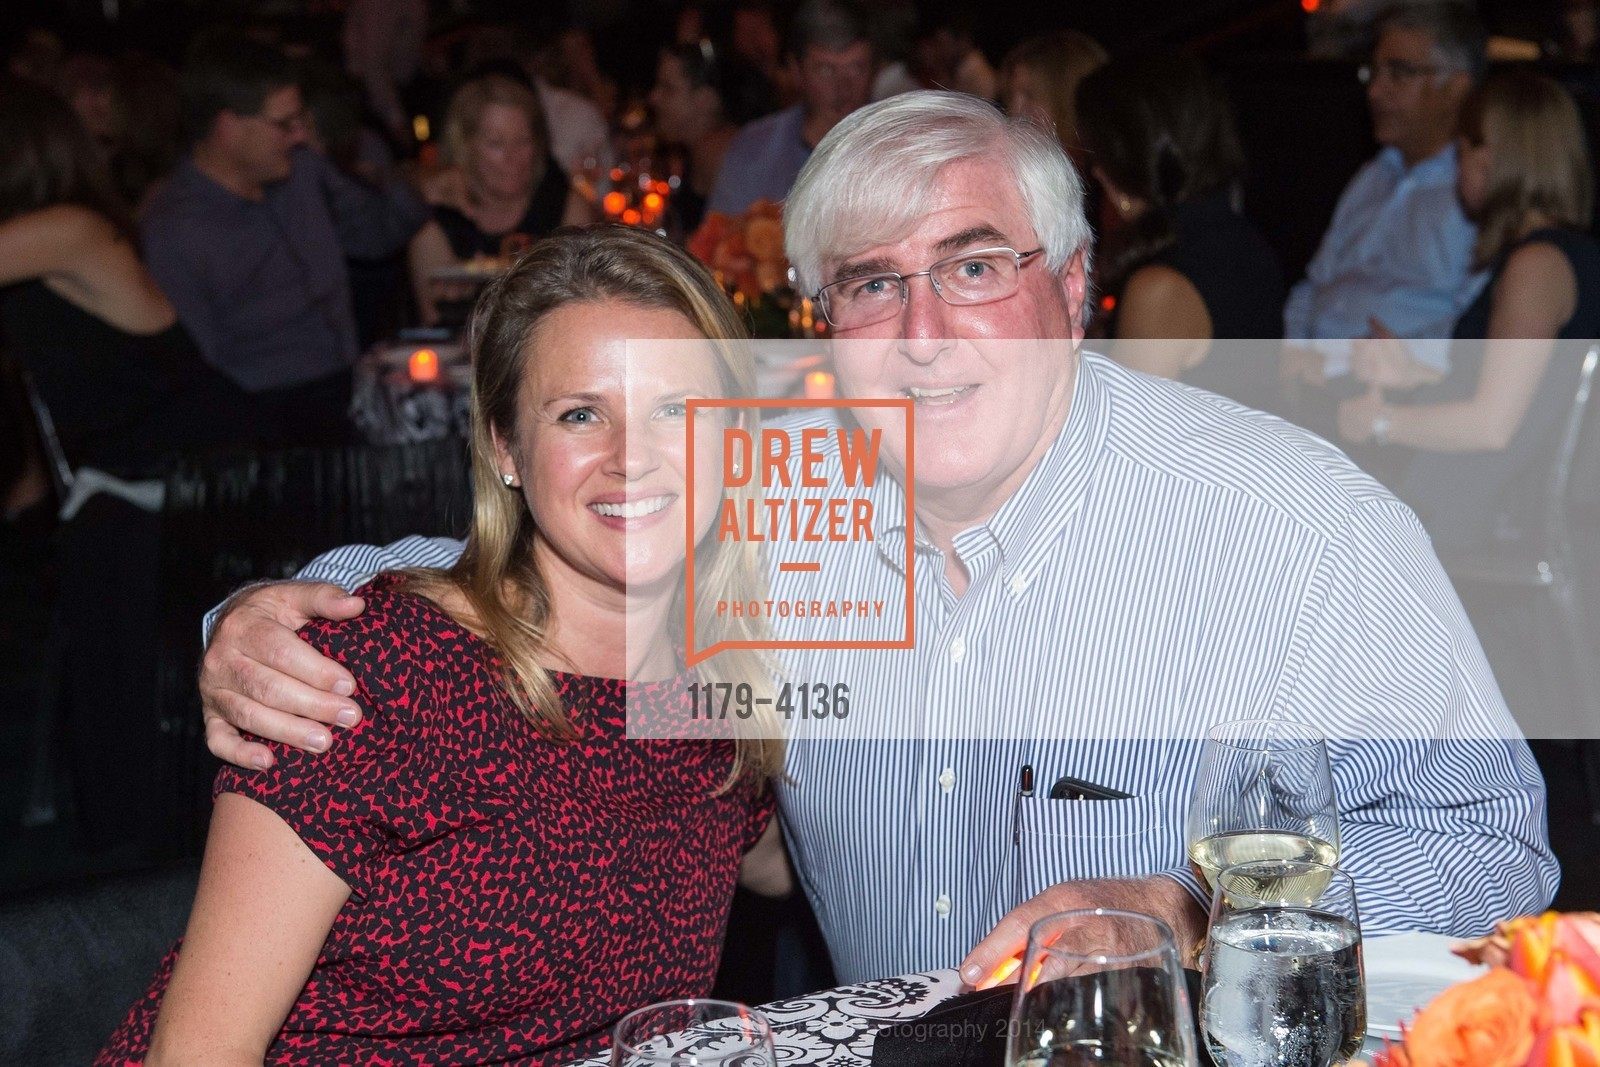 Allison Rose, Ron Conway, Photo #1179-4136